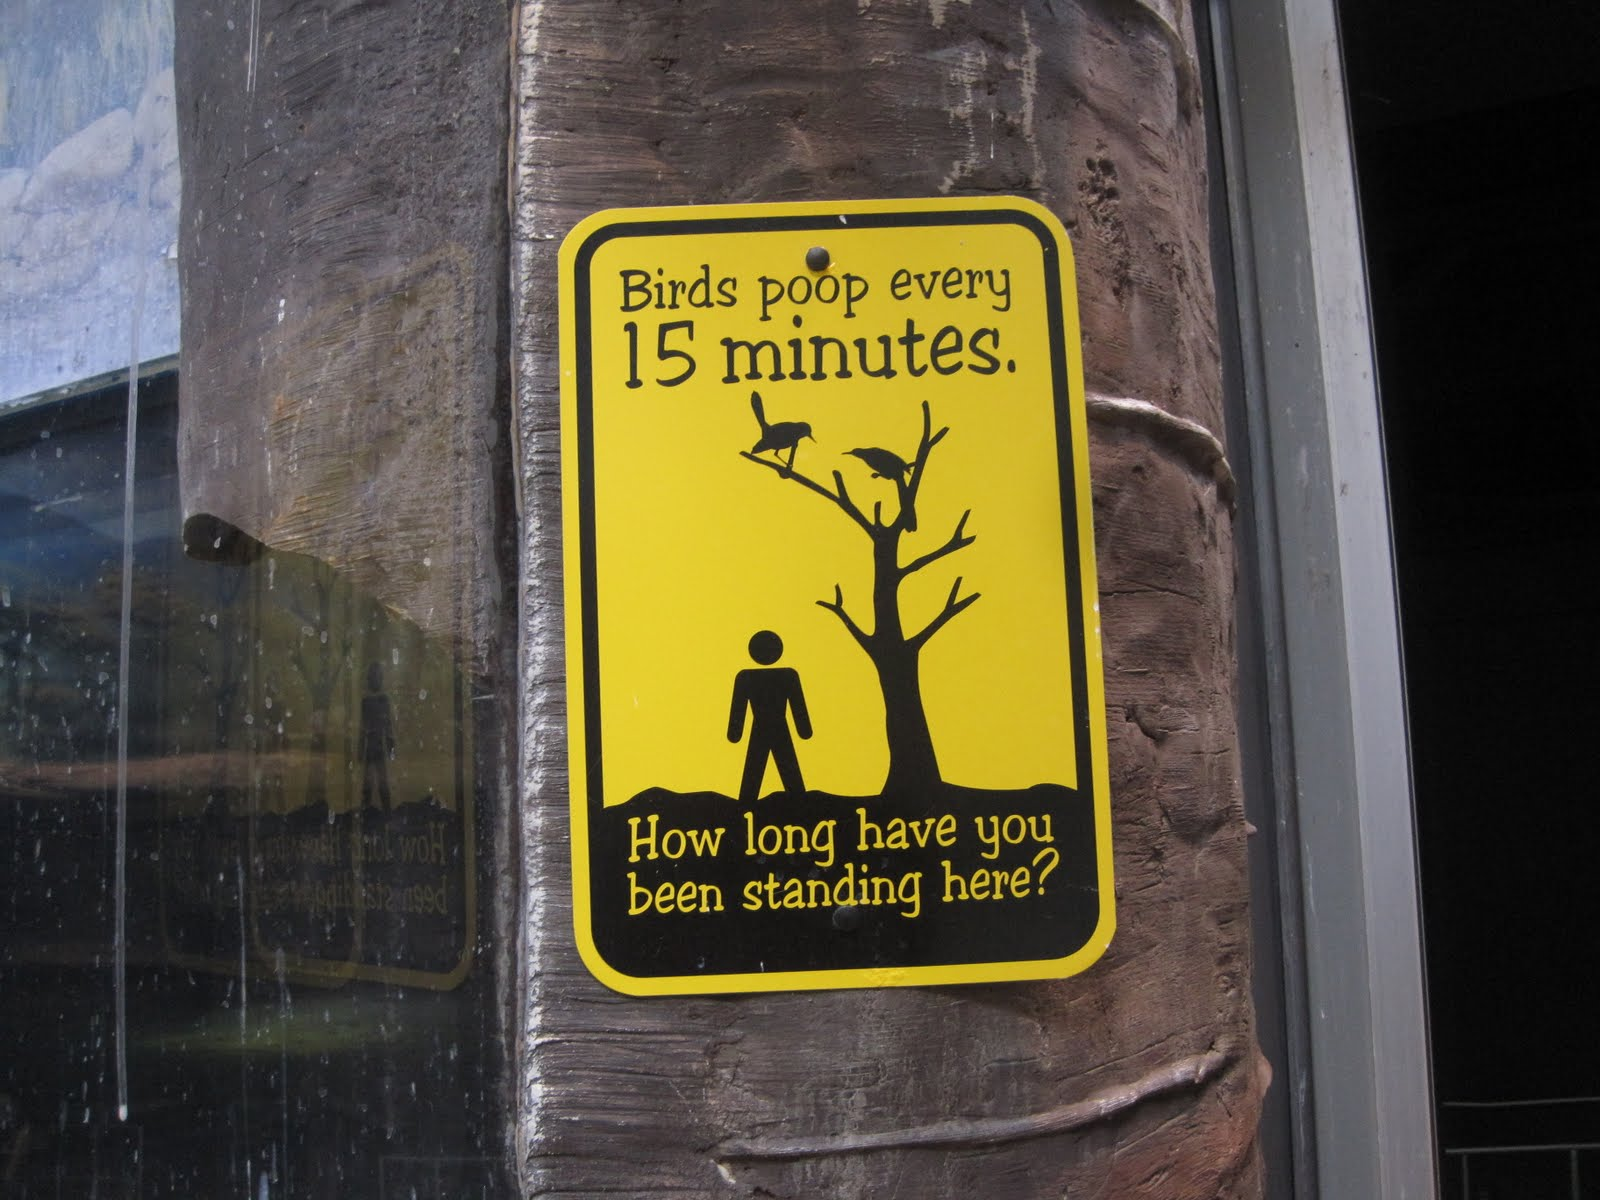 Funny Signs: The Runner Up